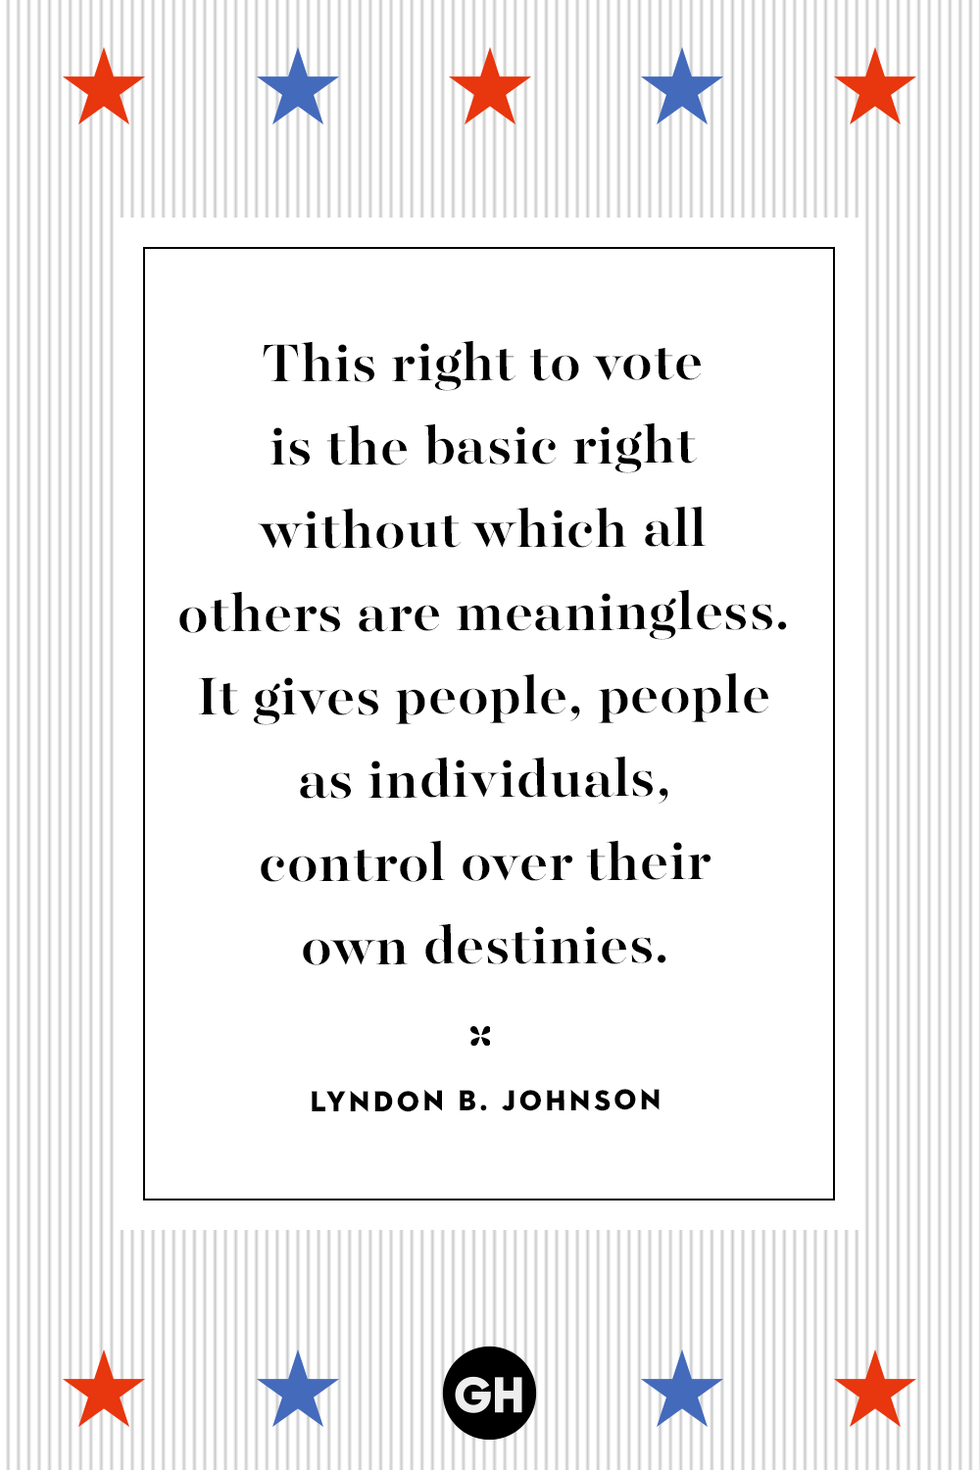 election-quotes-voting-quotes-05-lyndon-b-johnson-1567019363